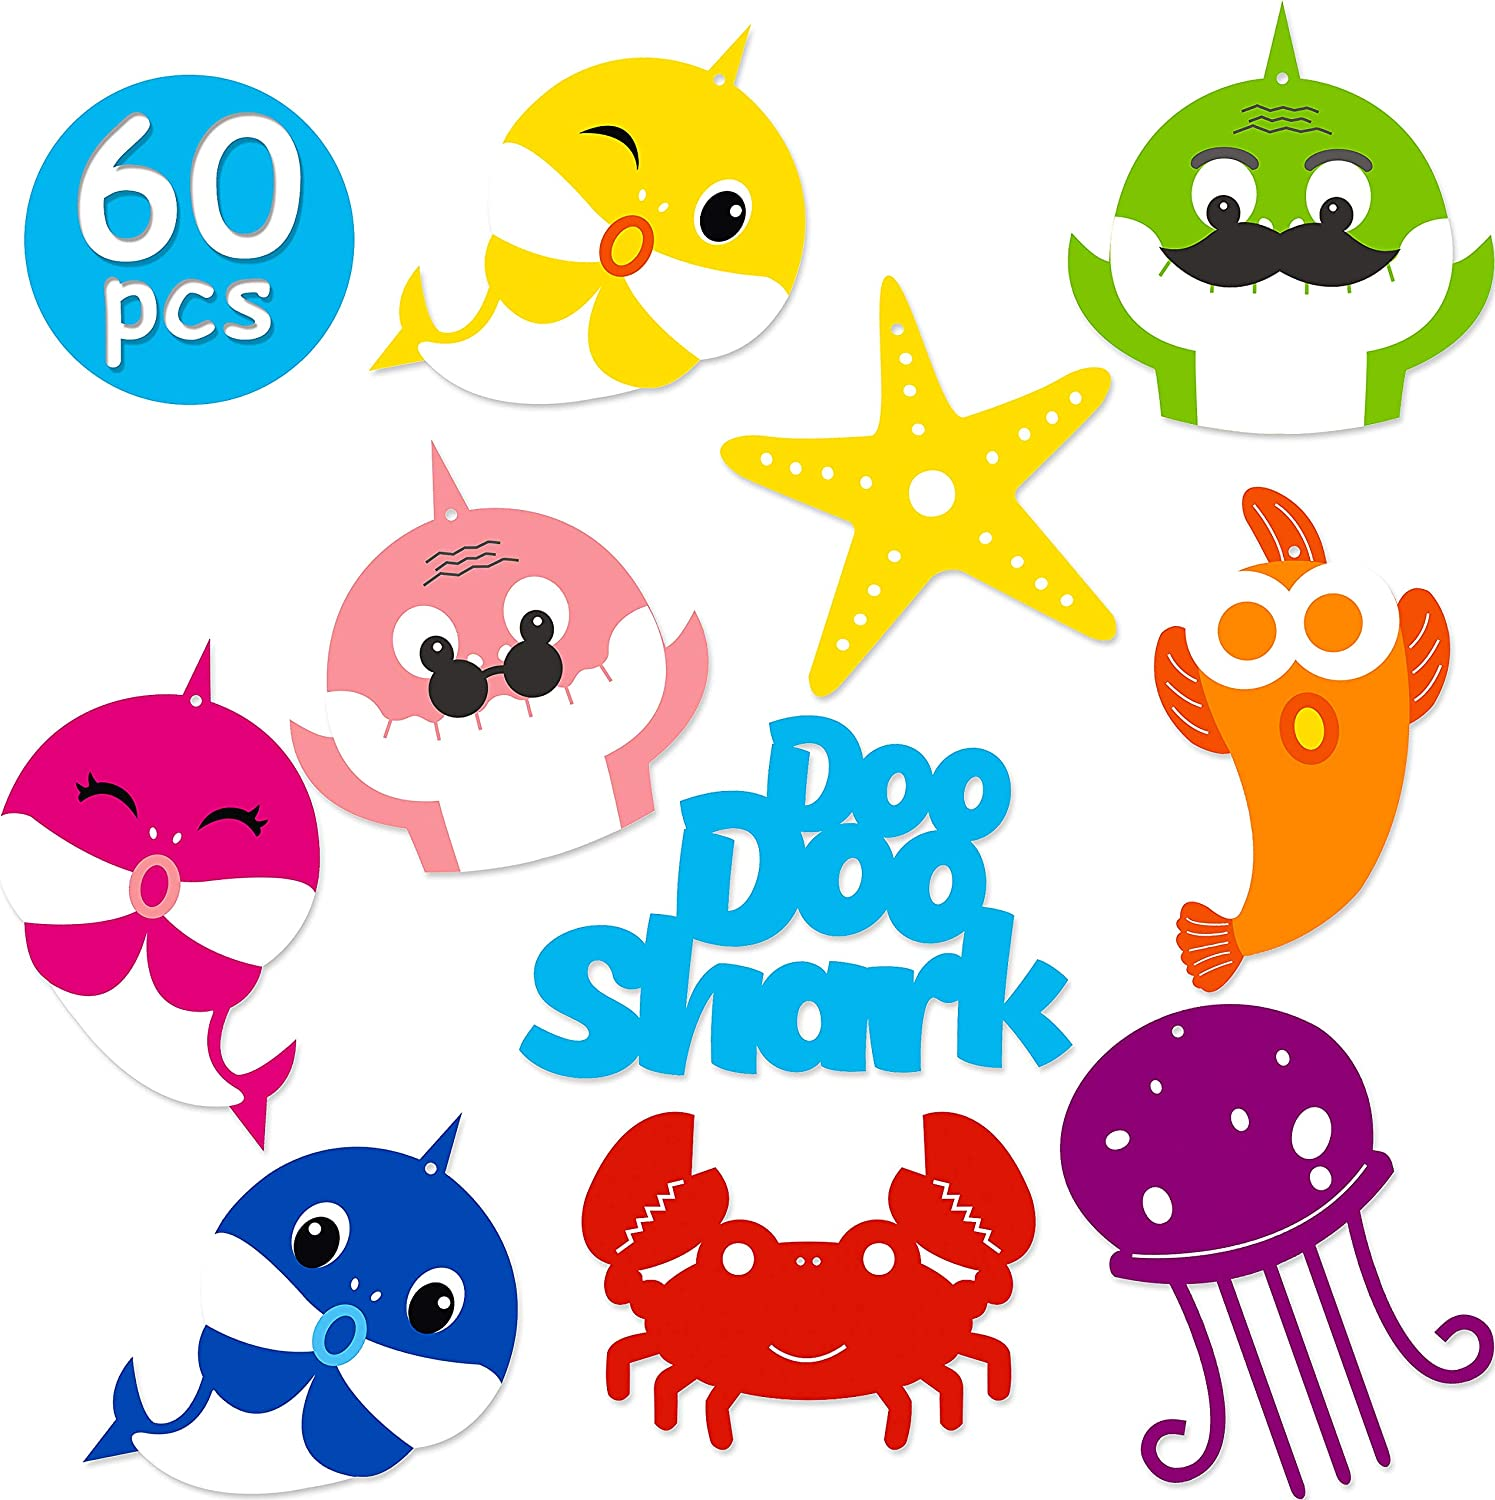 Ticiaga 60pcs Doo Doo Shark DIY Party Decoration Set, Double Sided Shark Centerpiece Sticks Table Topper for Kids Birthday, Party Banner Bunting Decoration, Shark Cake Topper, Photo Booth Props